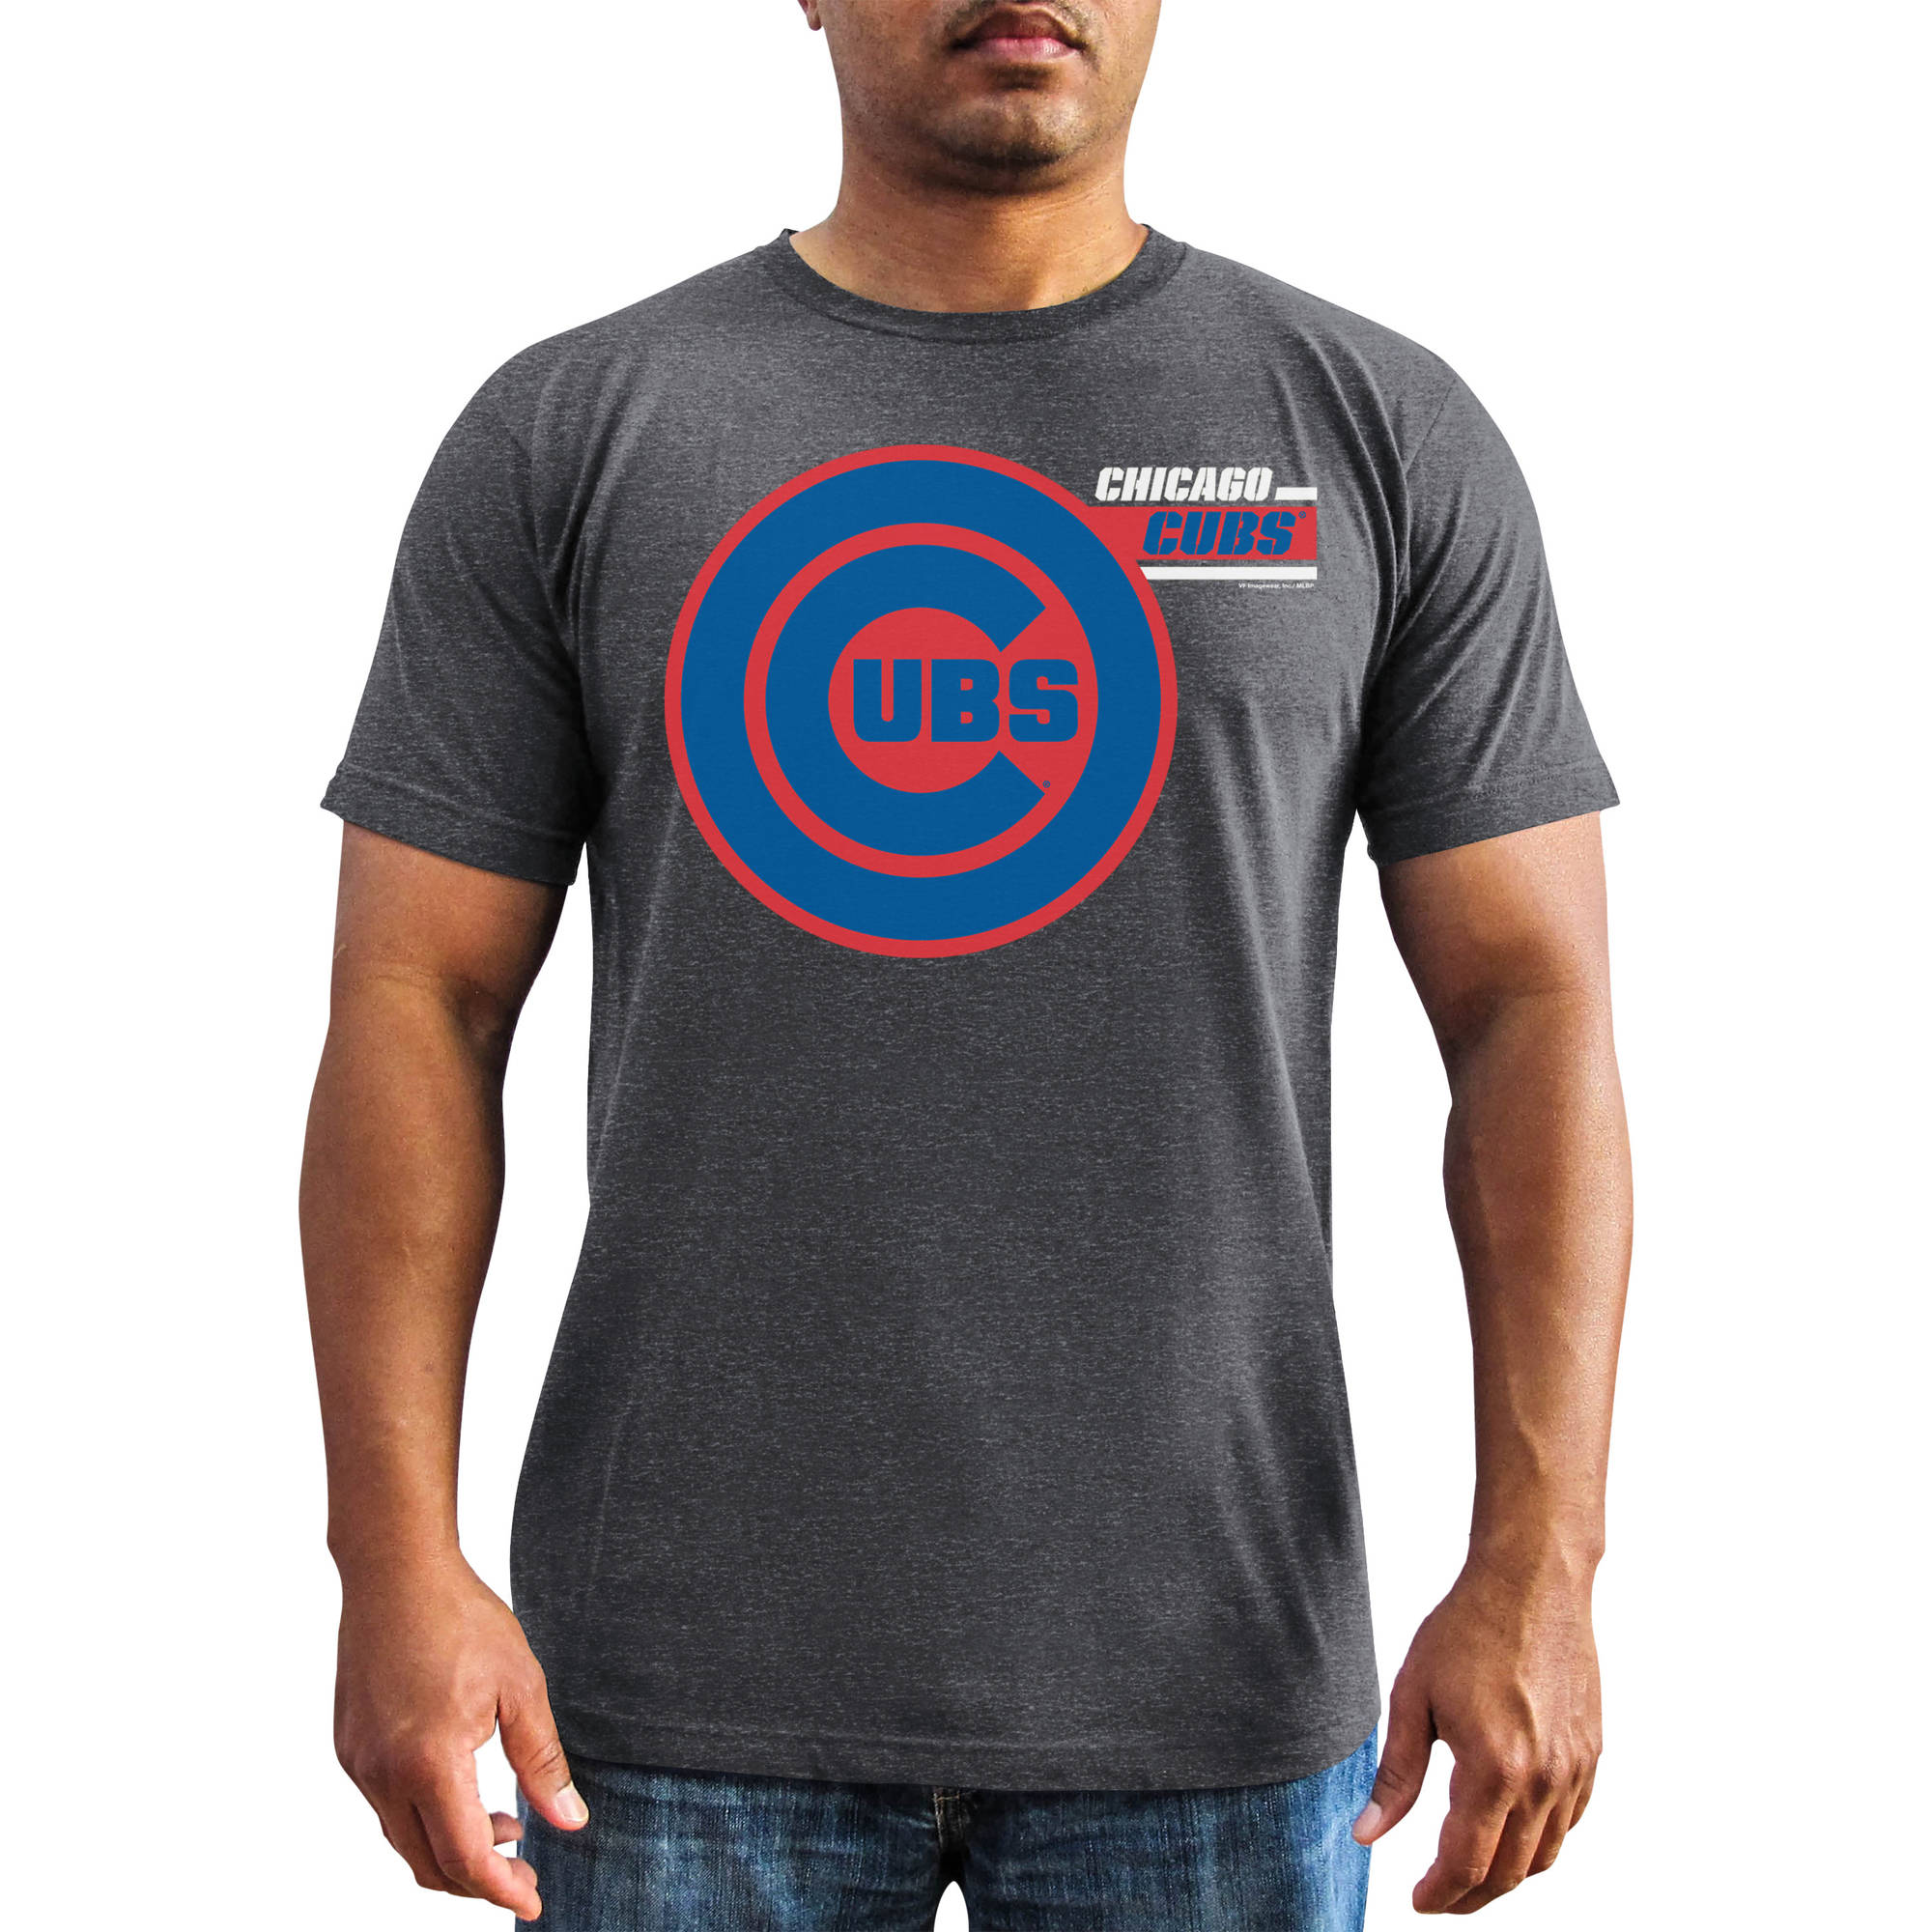 MLB - Mens Chicago Cubs Short Sleeve Team Tee